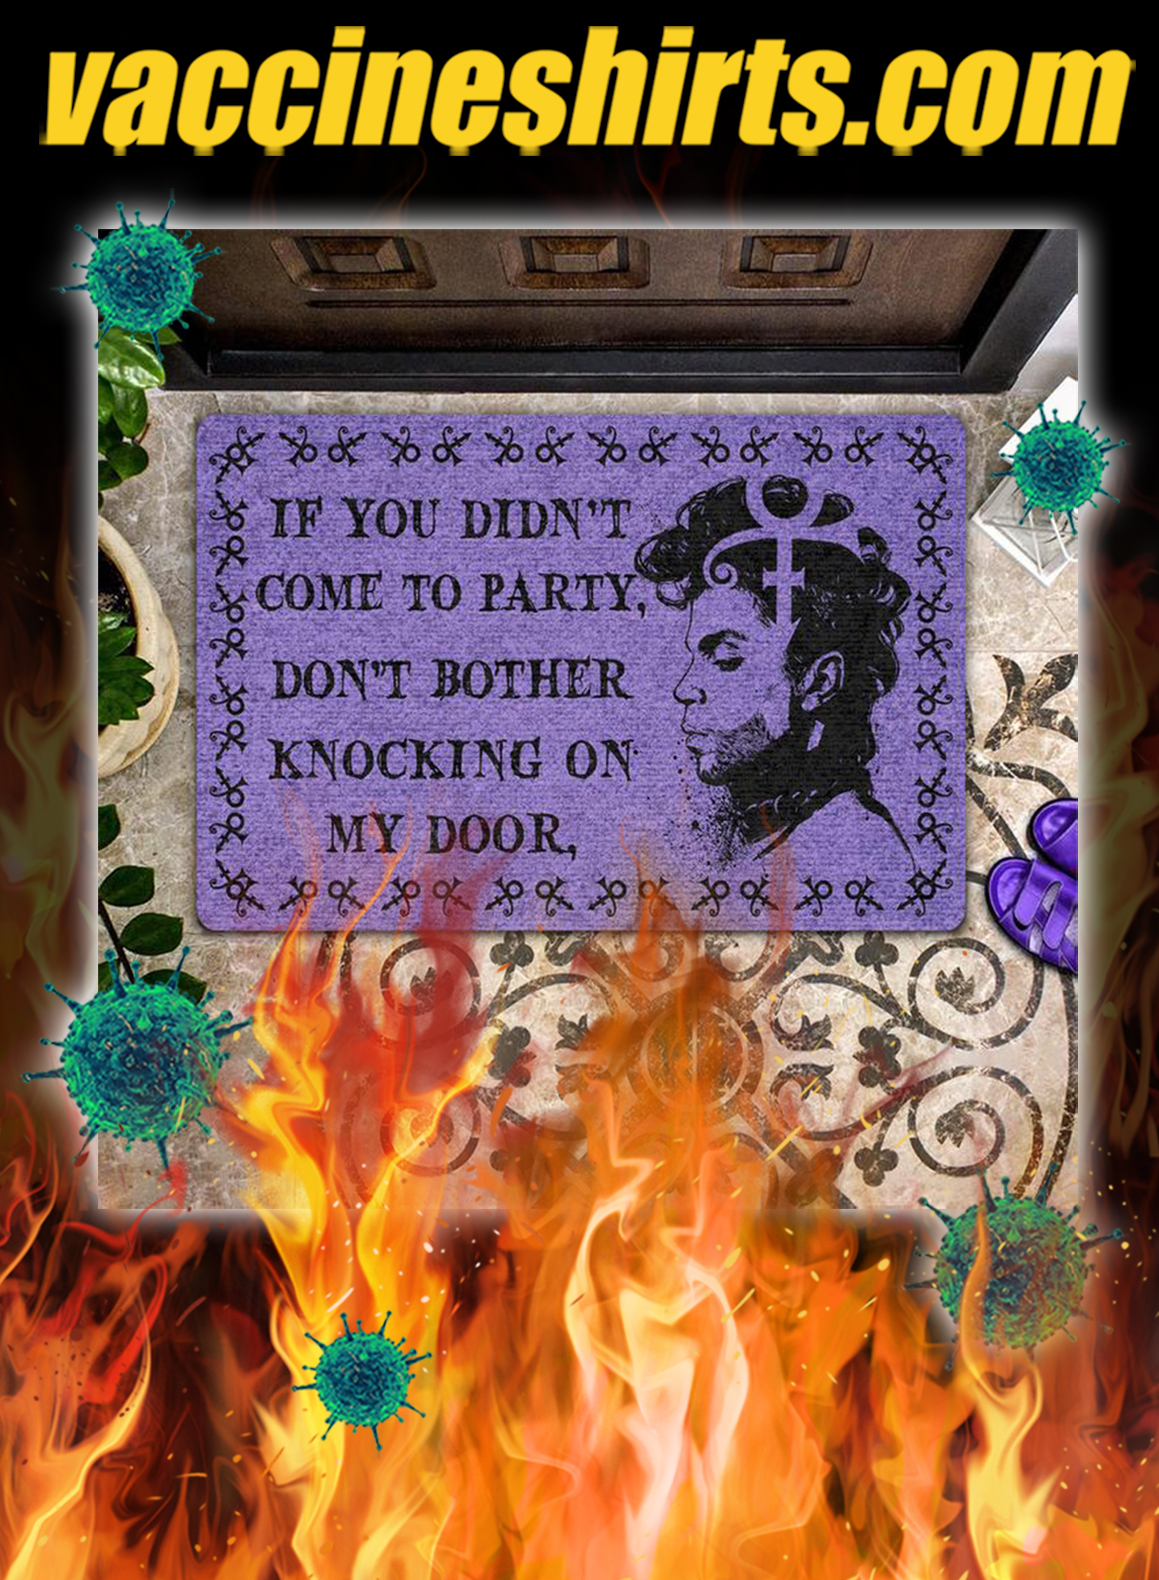 Prince If you didn't come to party don't bother knocking on my door doormat - pic 1